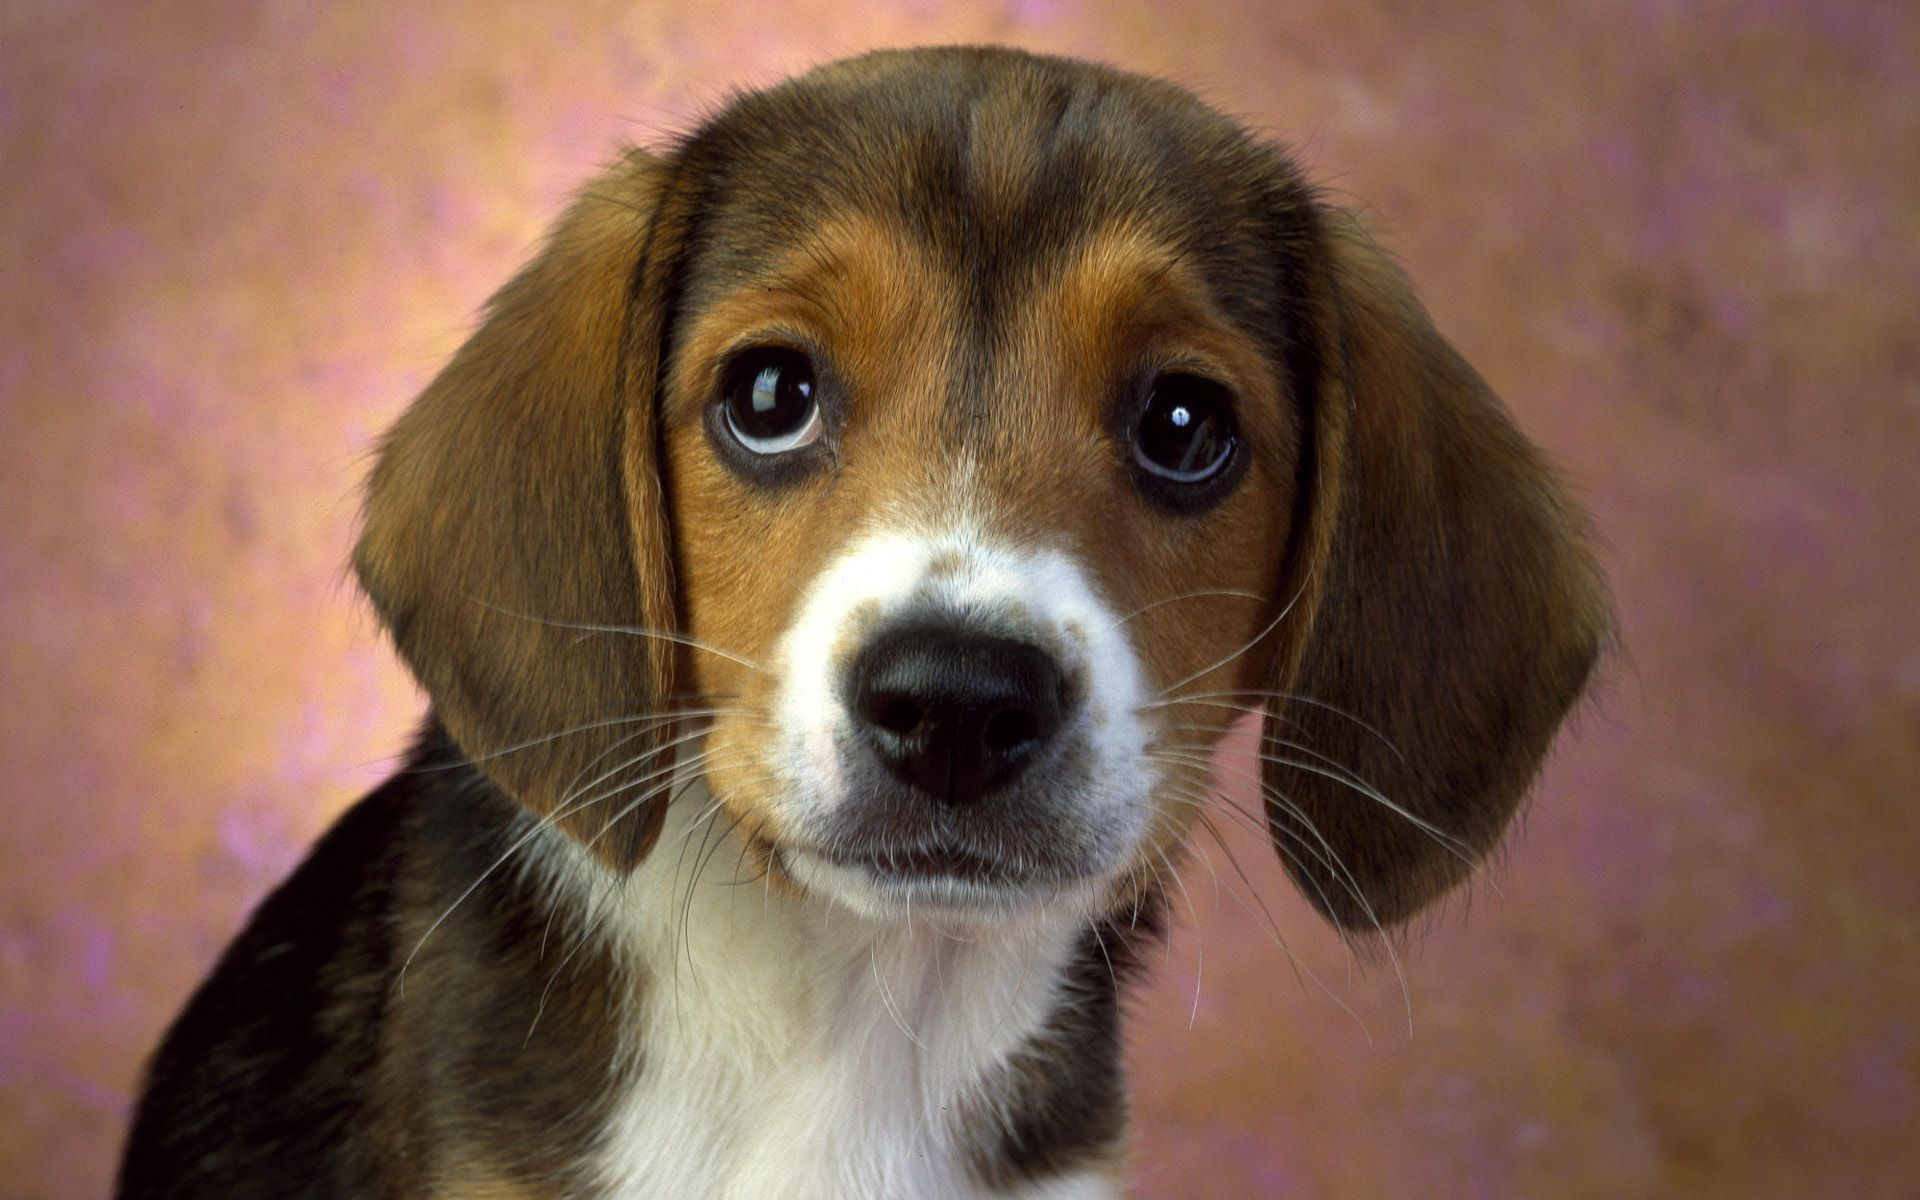 Cute dog cute animals pinterest dog dog cancer and veterinarians